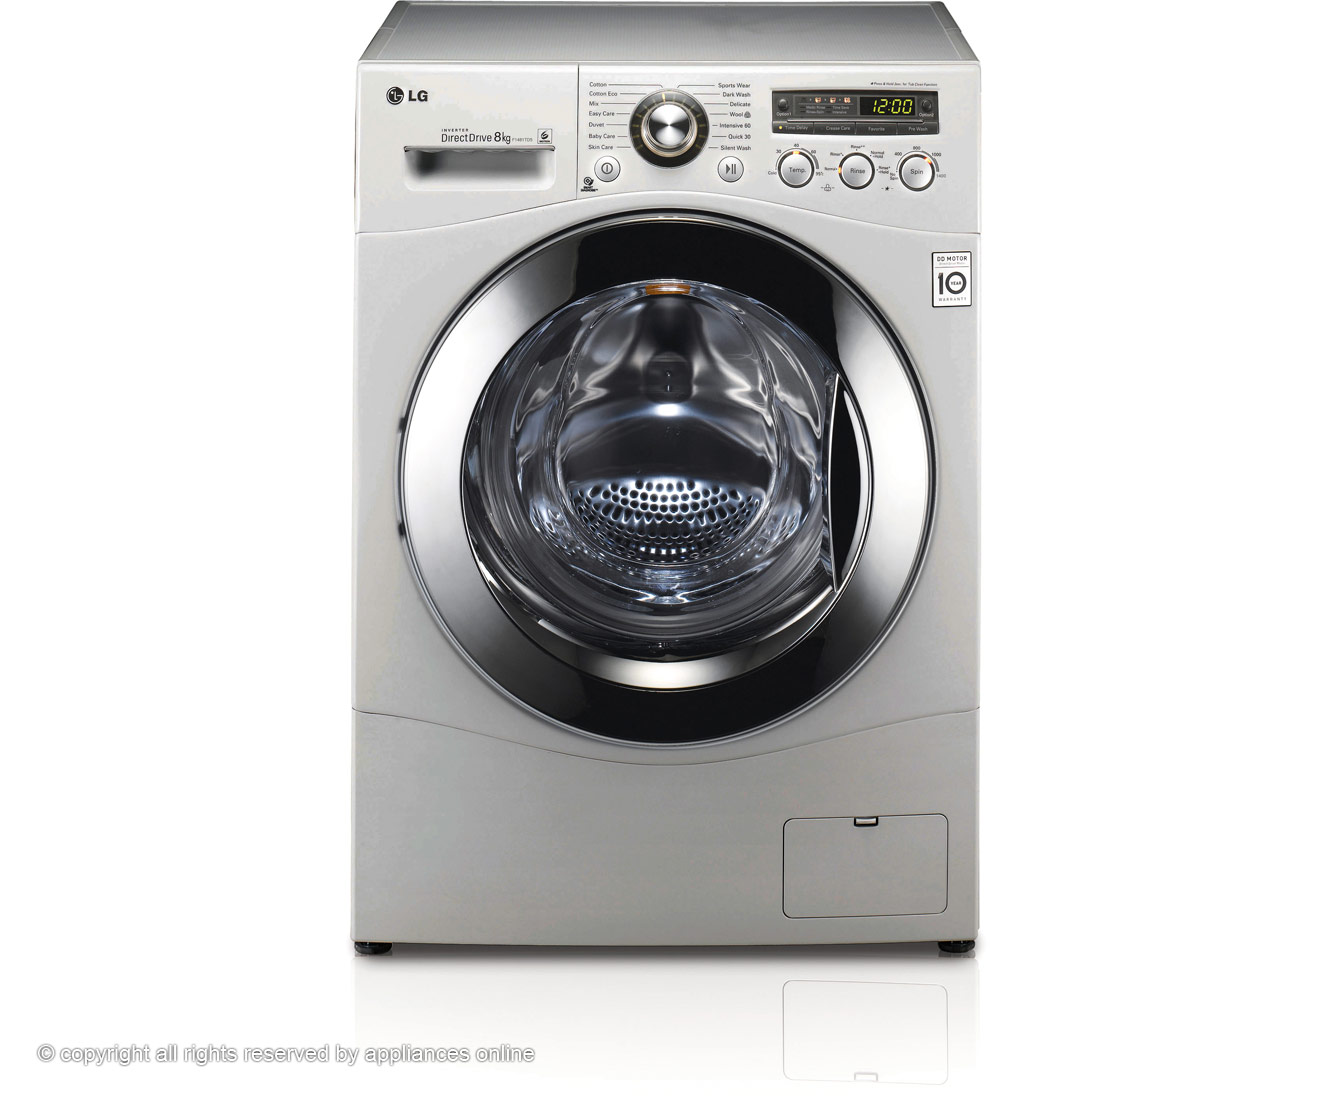 LG 8Kg Direct Drive F1481TD5 8Kg Washing Machine with 1400 rpm - Silver